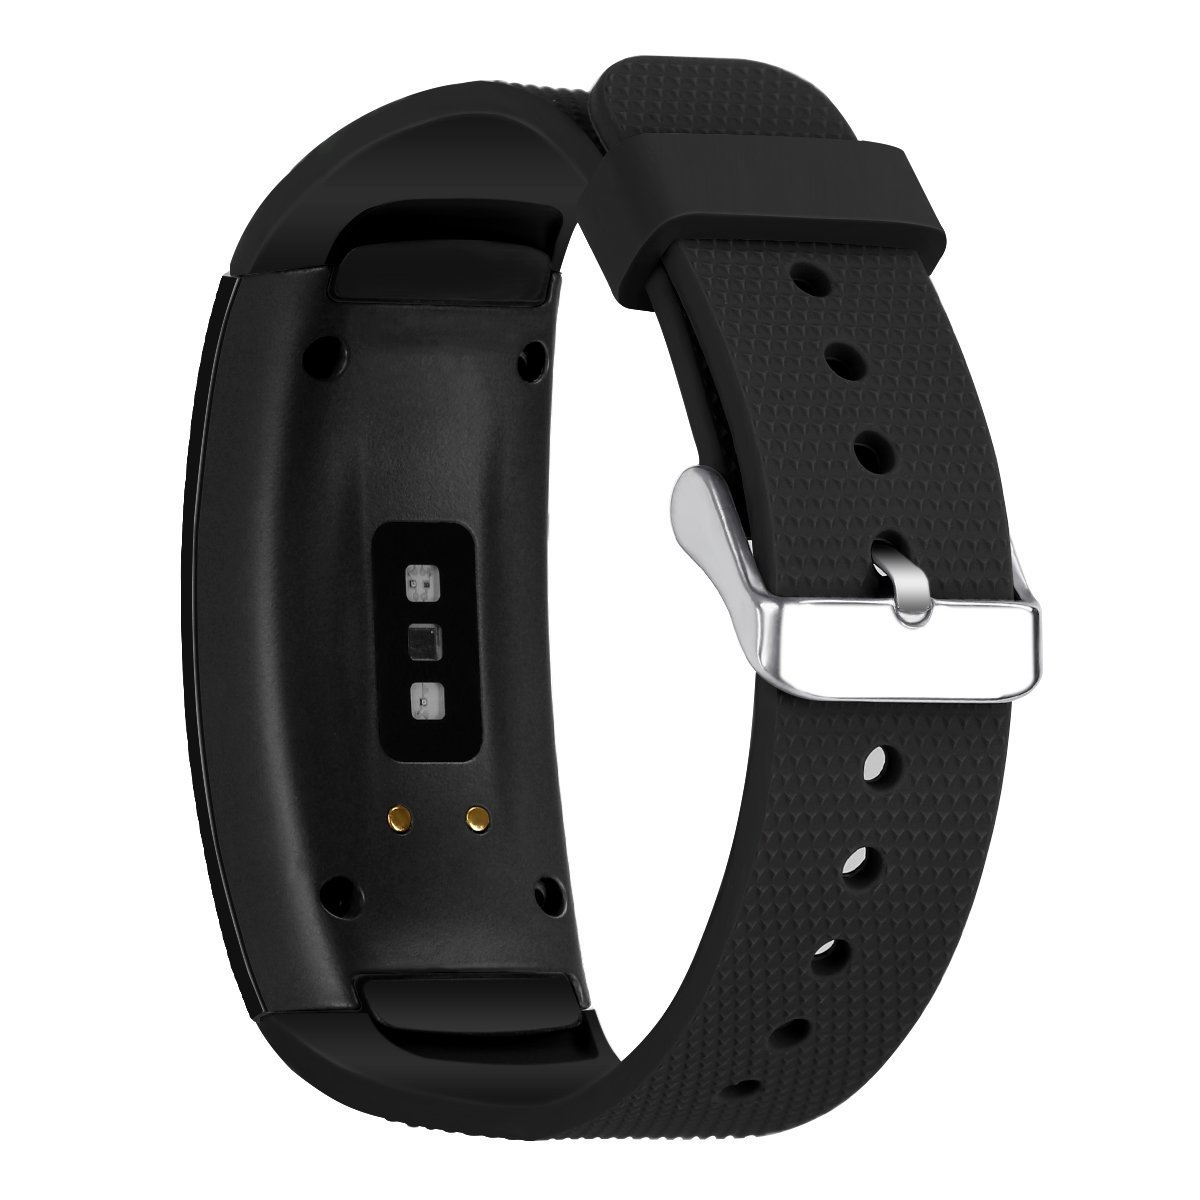 Amazon.com: For Samsung Gear Fit 2 Band/Gear Fit 2 Pro ...